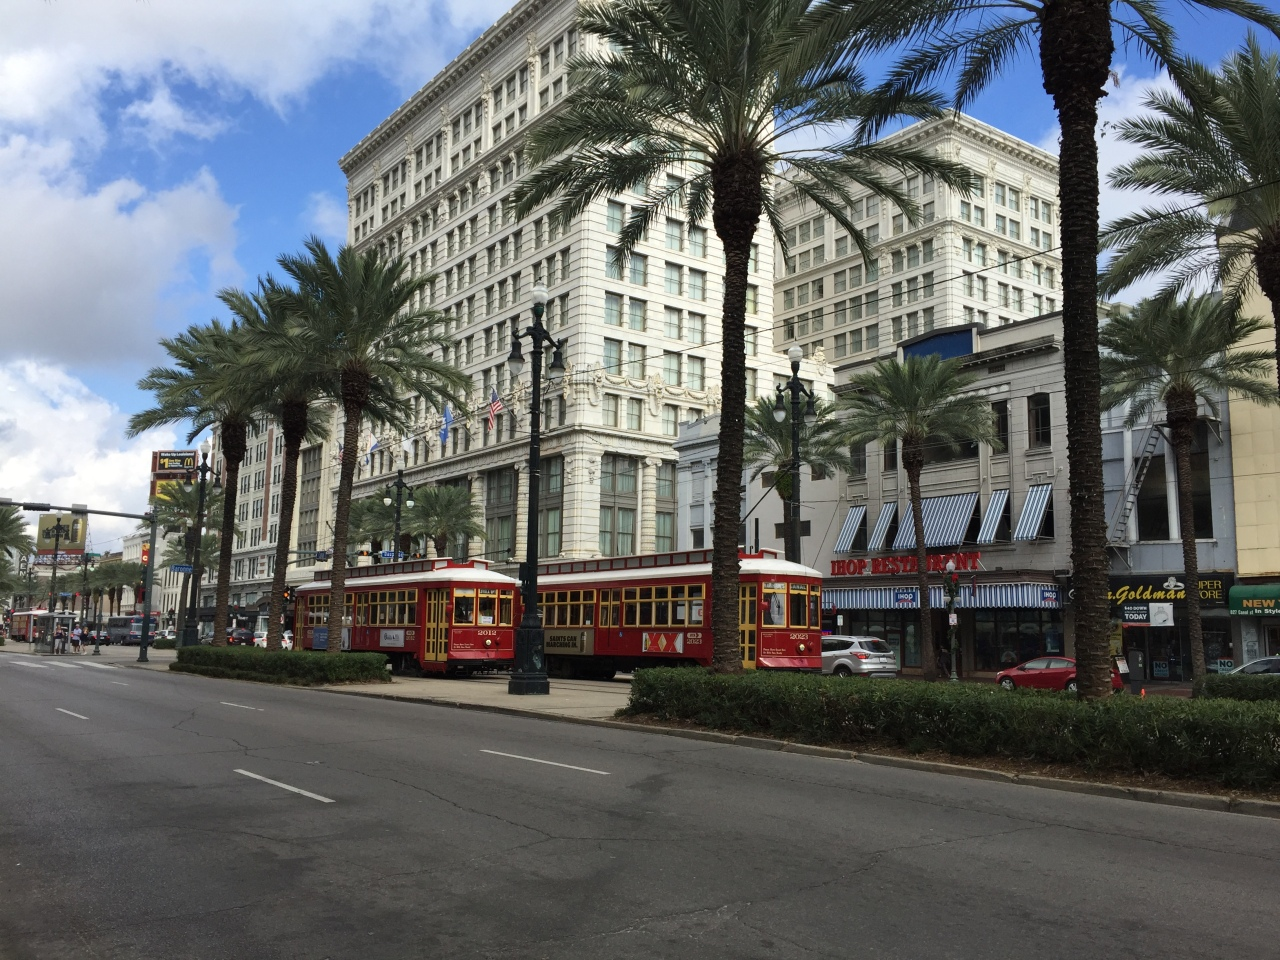 The oldest streetcar system in the world